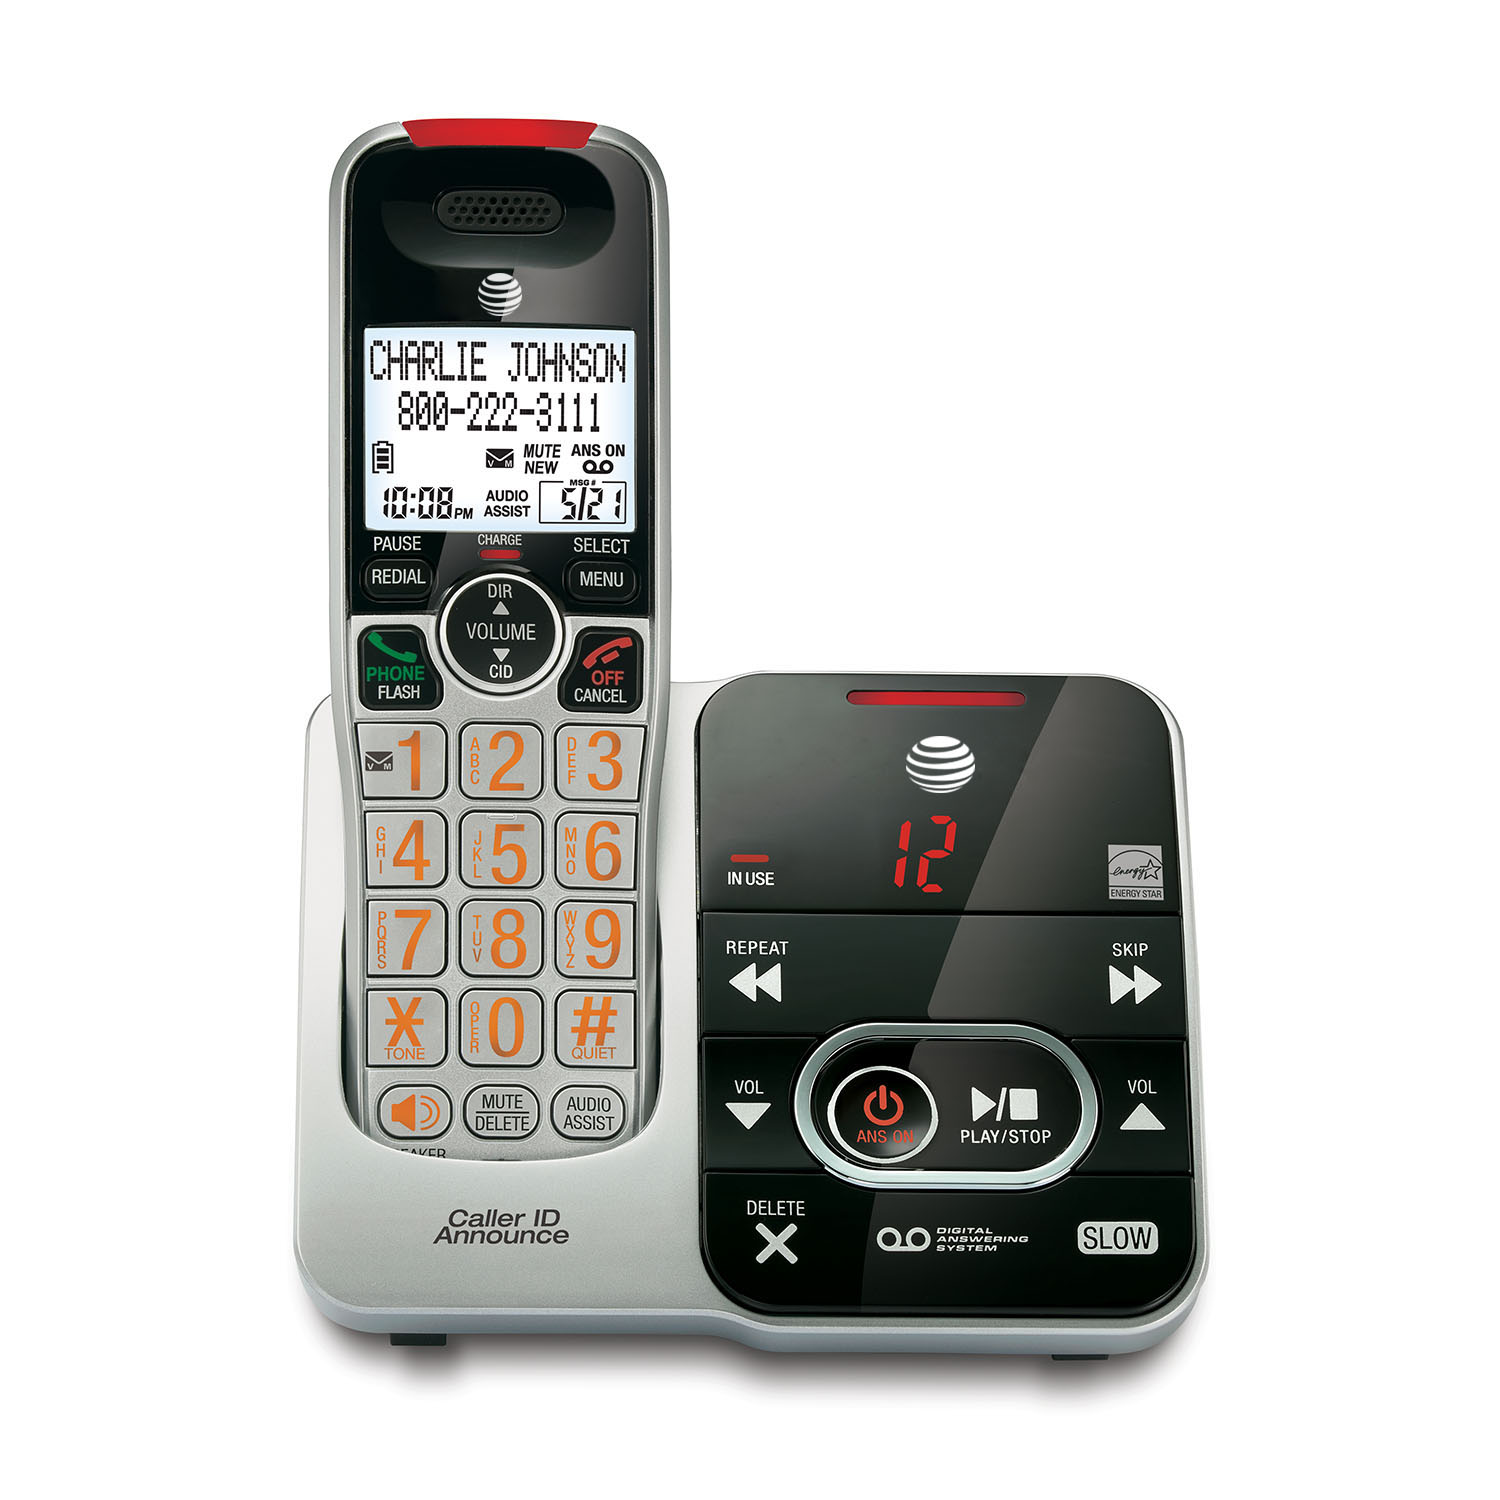 AT&T CRL32102 DECT 6.0 Big-Button Cordless Phone System With Digital Answering System & Caller ID